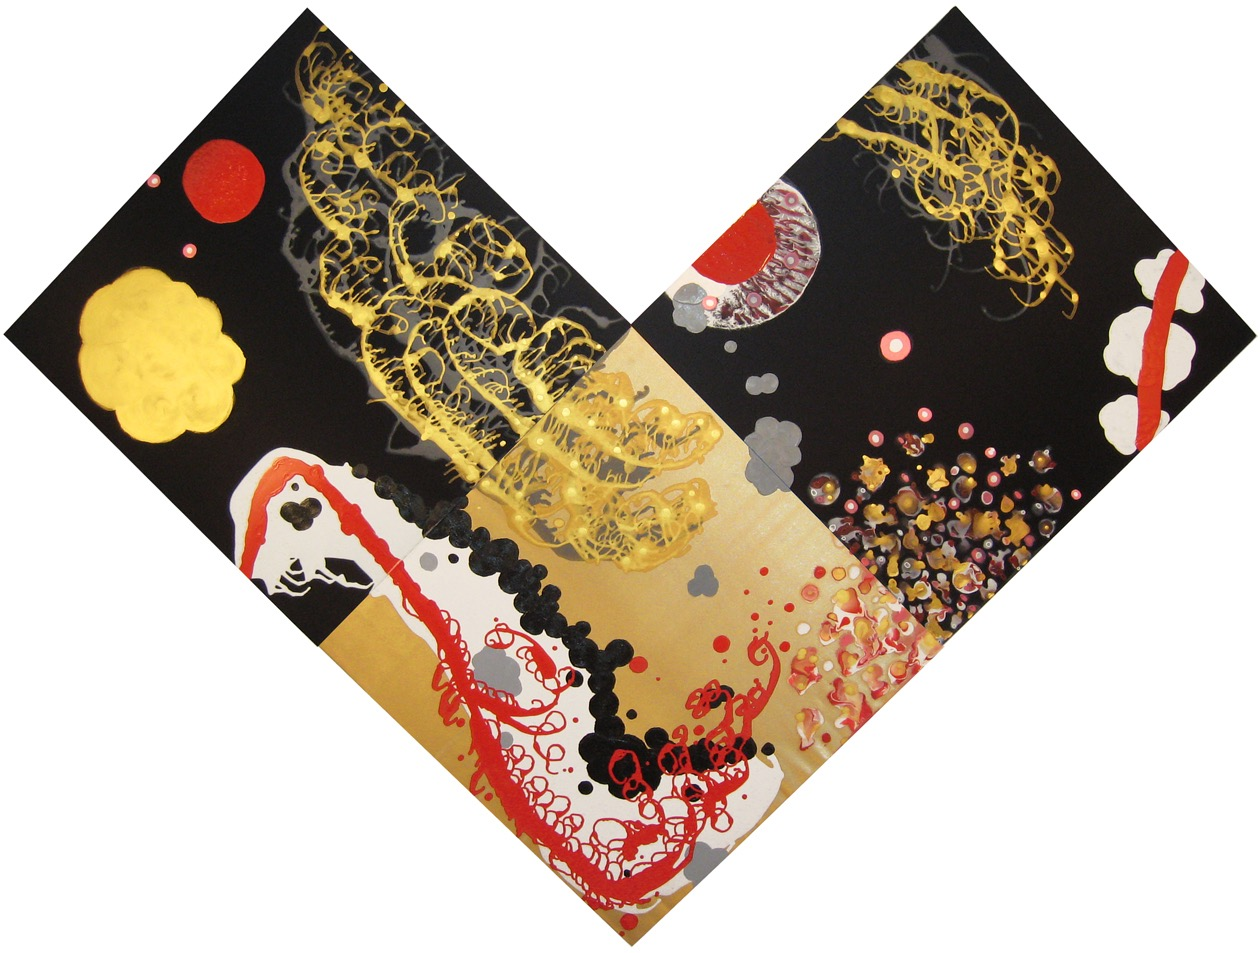 Valences of Ascendancy (triptych)  , 2009, Acrylic on silk and satin, 83.5 x 111.5 in.